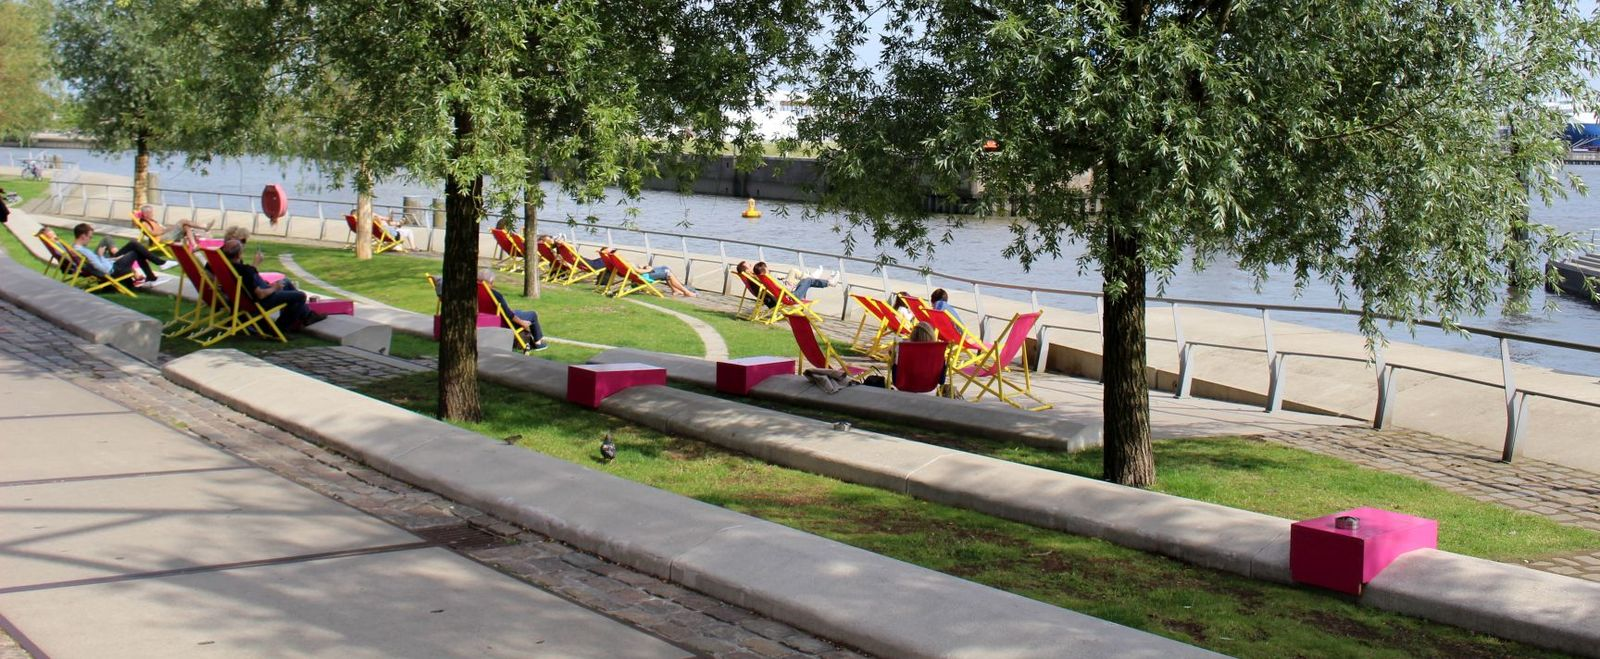 People relax and enjoy a resilient urban beach.